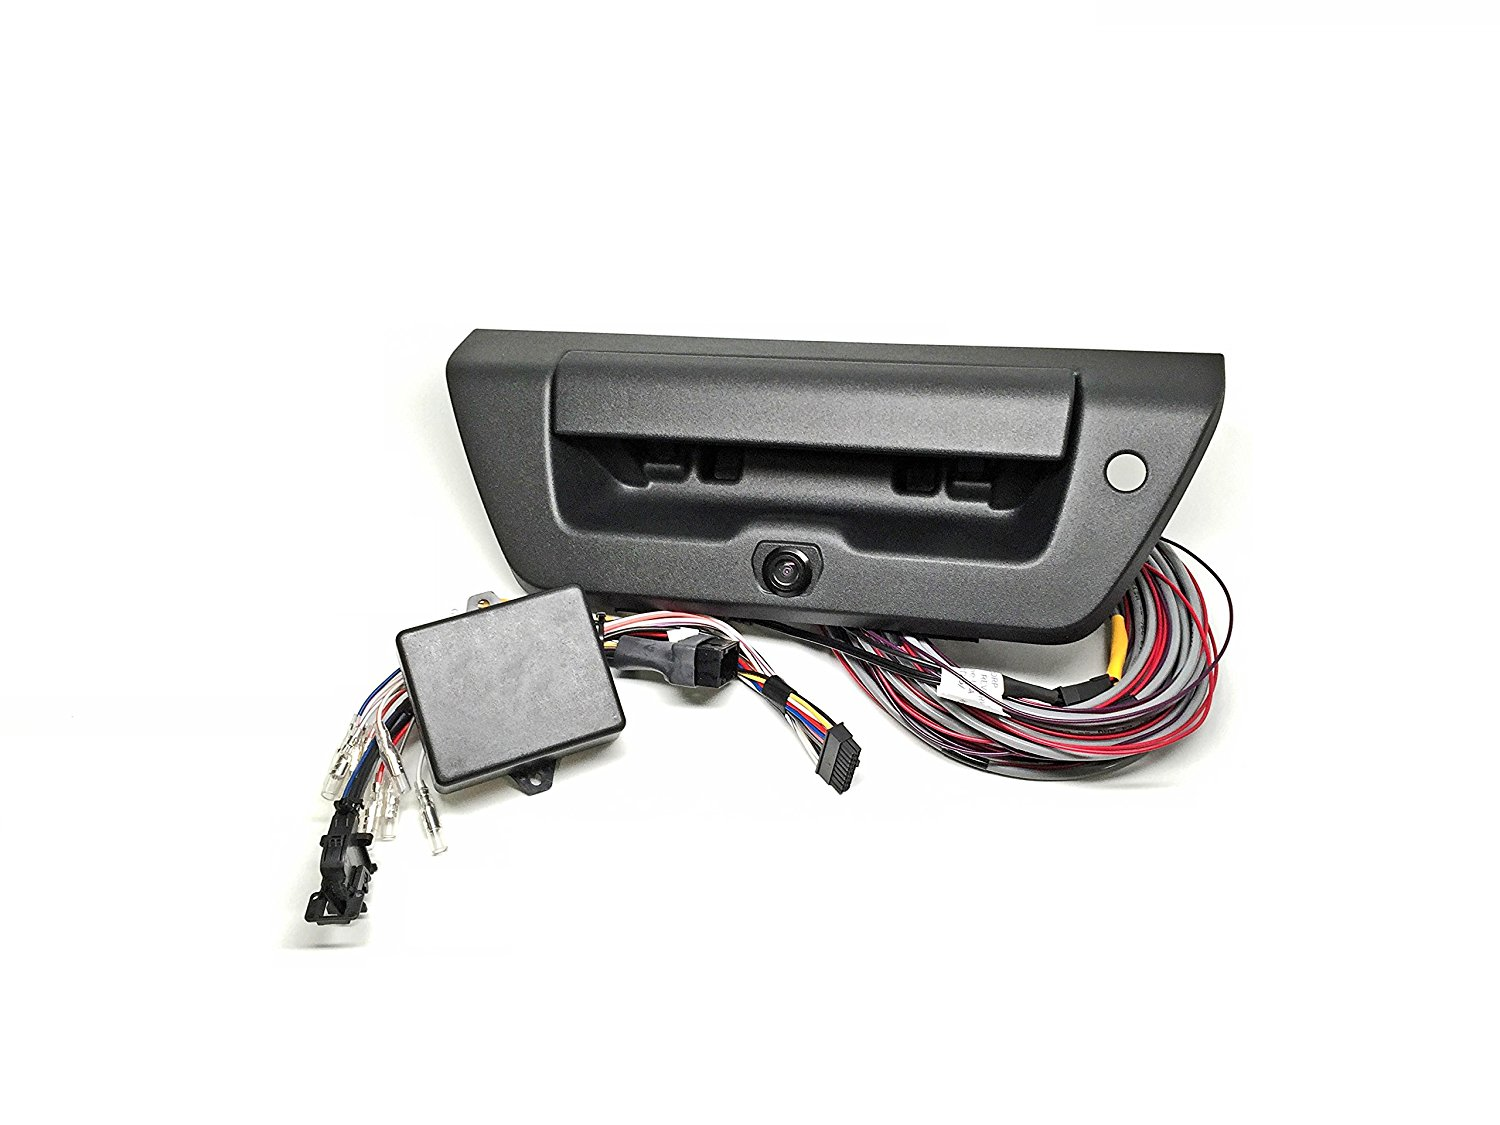 """AIE - Rear Camera Interface Kit for (2015-2017) FORD F150 w/ 4.2"""" LCD Radio Display - Includes Factory Handle Camera"""